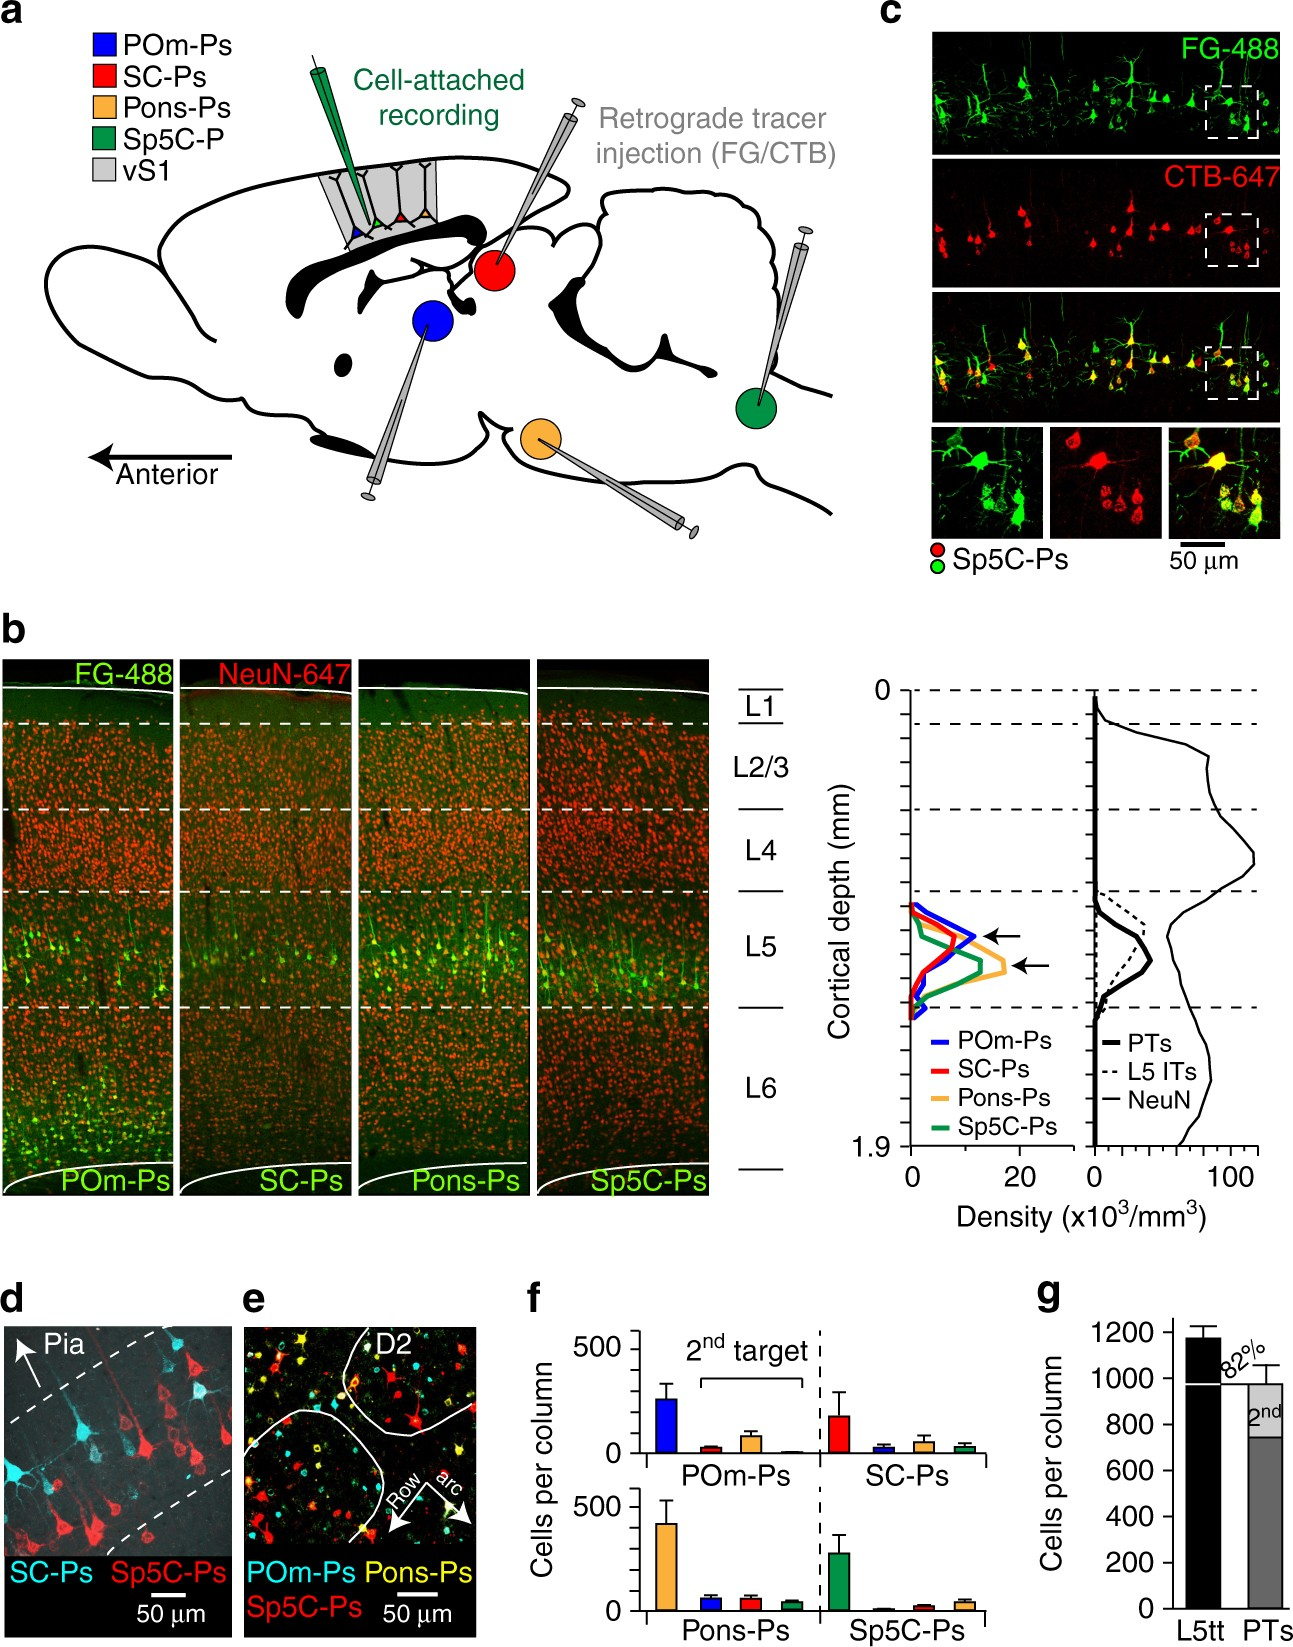 Relationships Between Structure In Vivo Function And Long Range